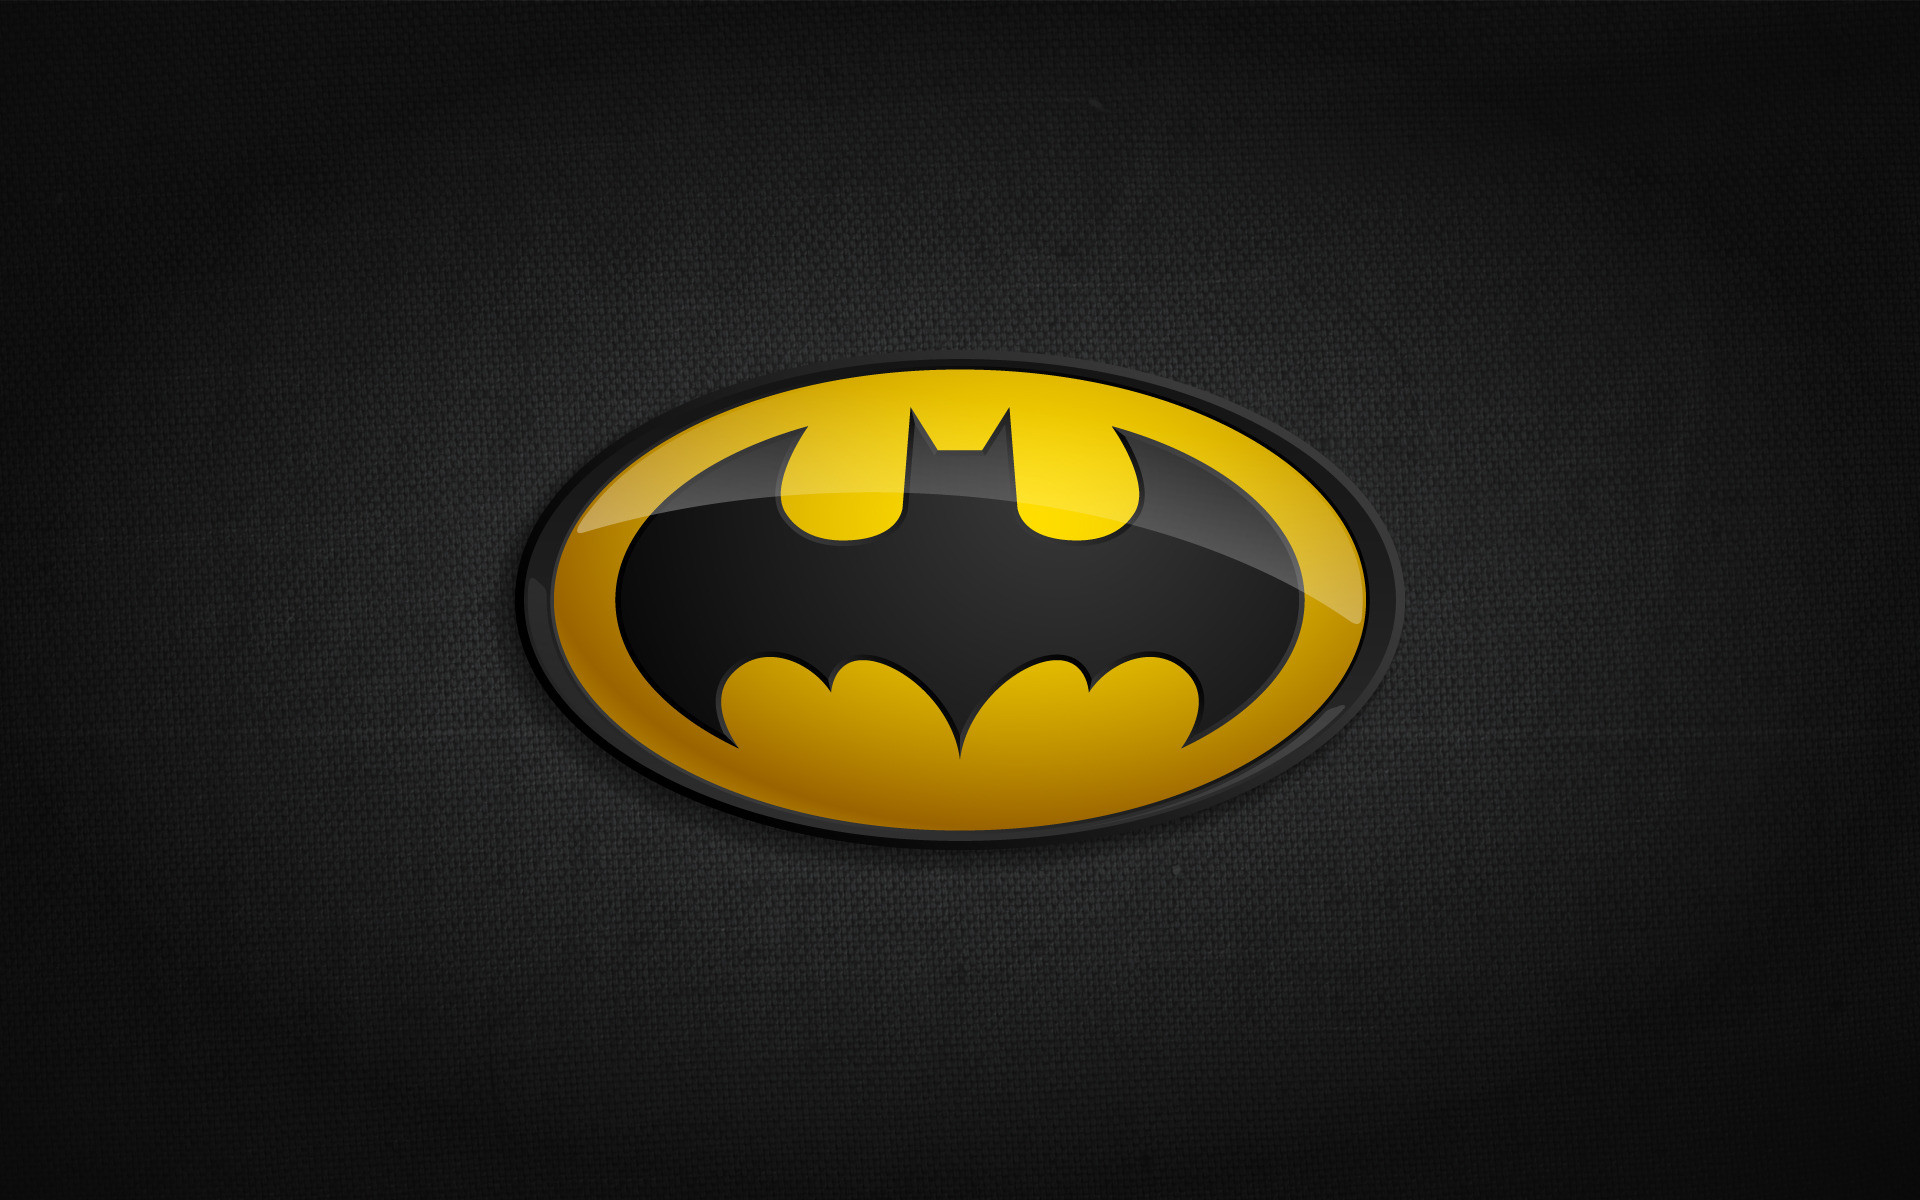 Ferrari Logo Wallpaper. 1680×1050. Batman Logo